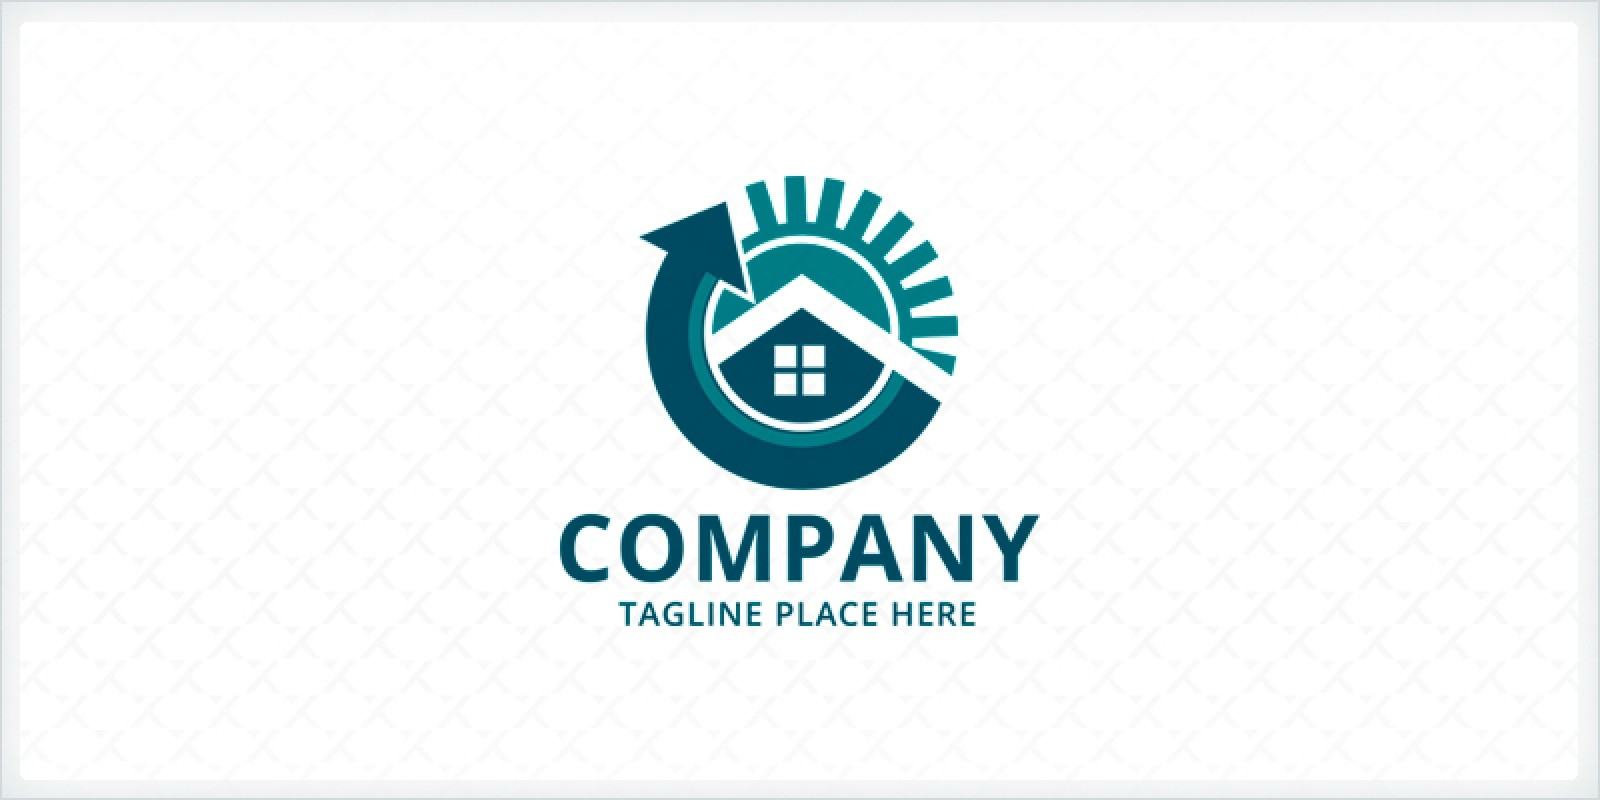 Home Remodeling - Logo Template on contracting logos, home repair services, home renovation, home repair logos, home siding logos, real estate logos, best home improvement logos, property management logos, home repair houses clip art, hvac logos, house painting logos, woodworking logos, home contractor logos, home handyman services, home building logos, home restoration logos, home technology logos, home builders logos, home logo construction, handyman logos,